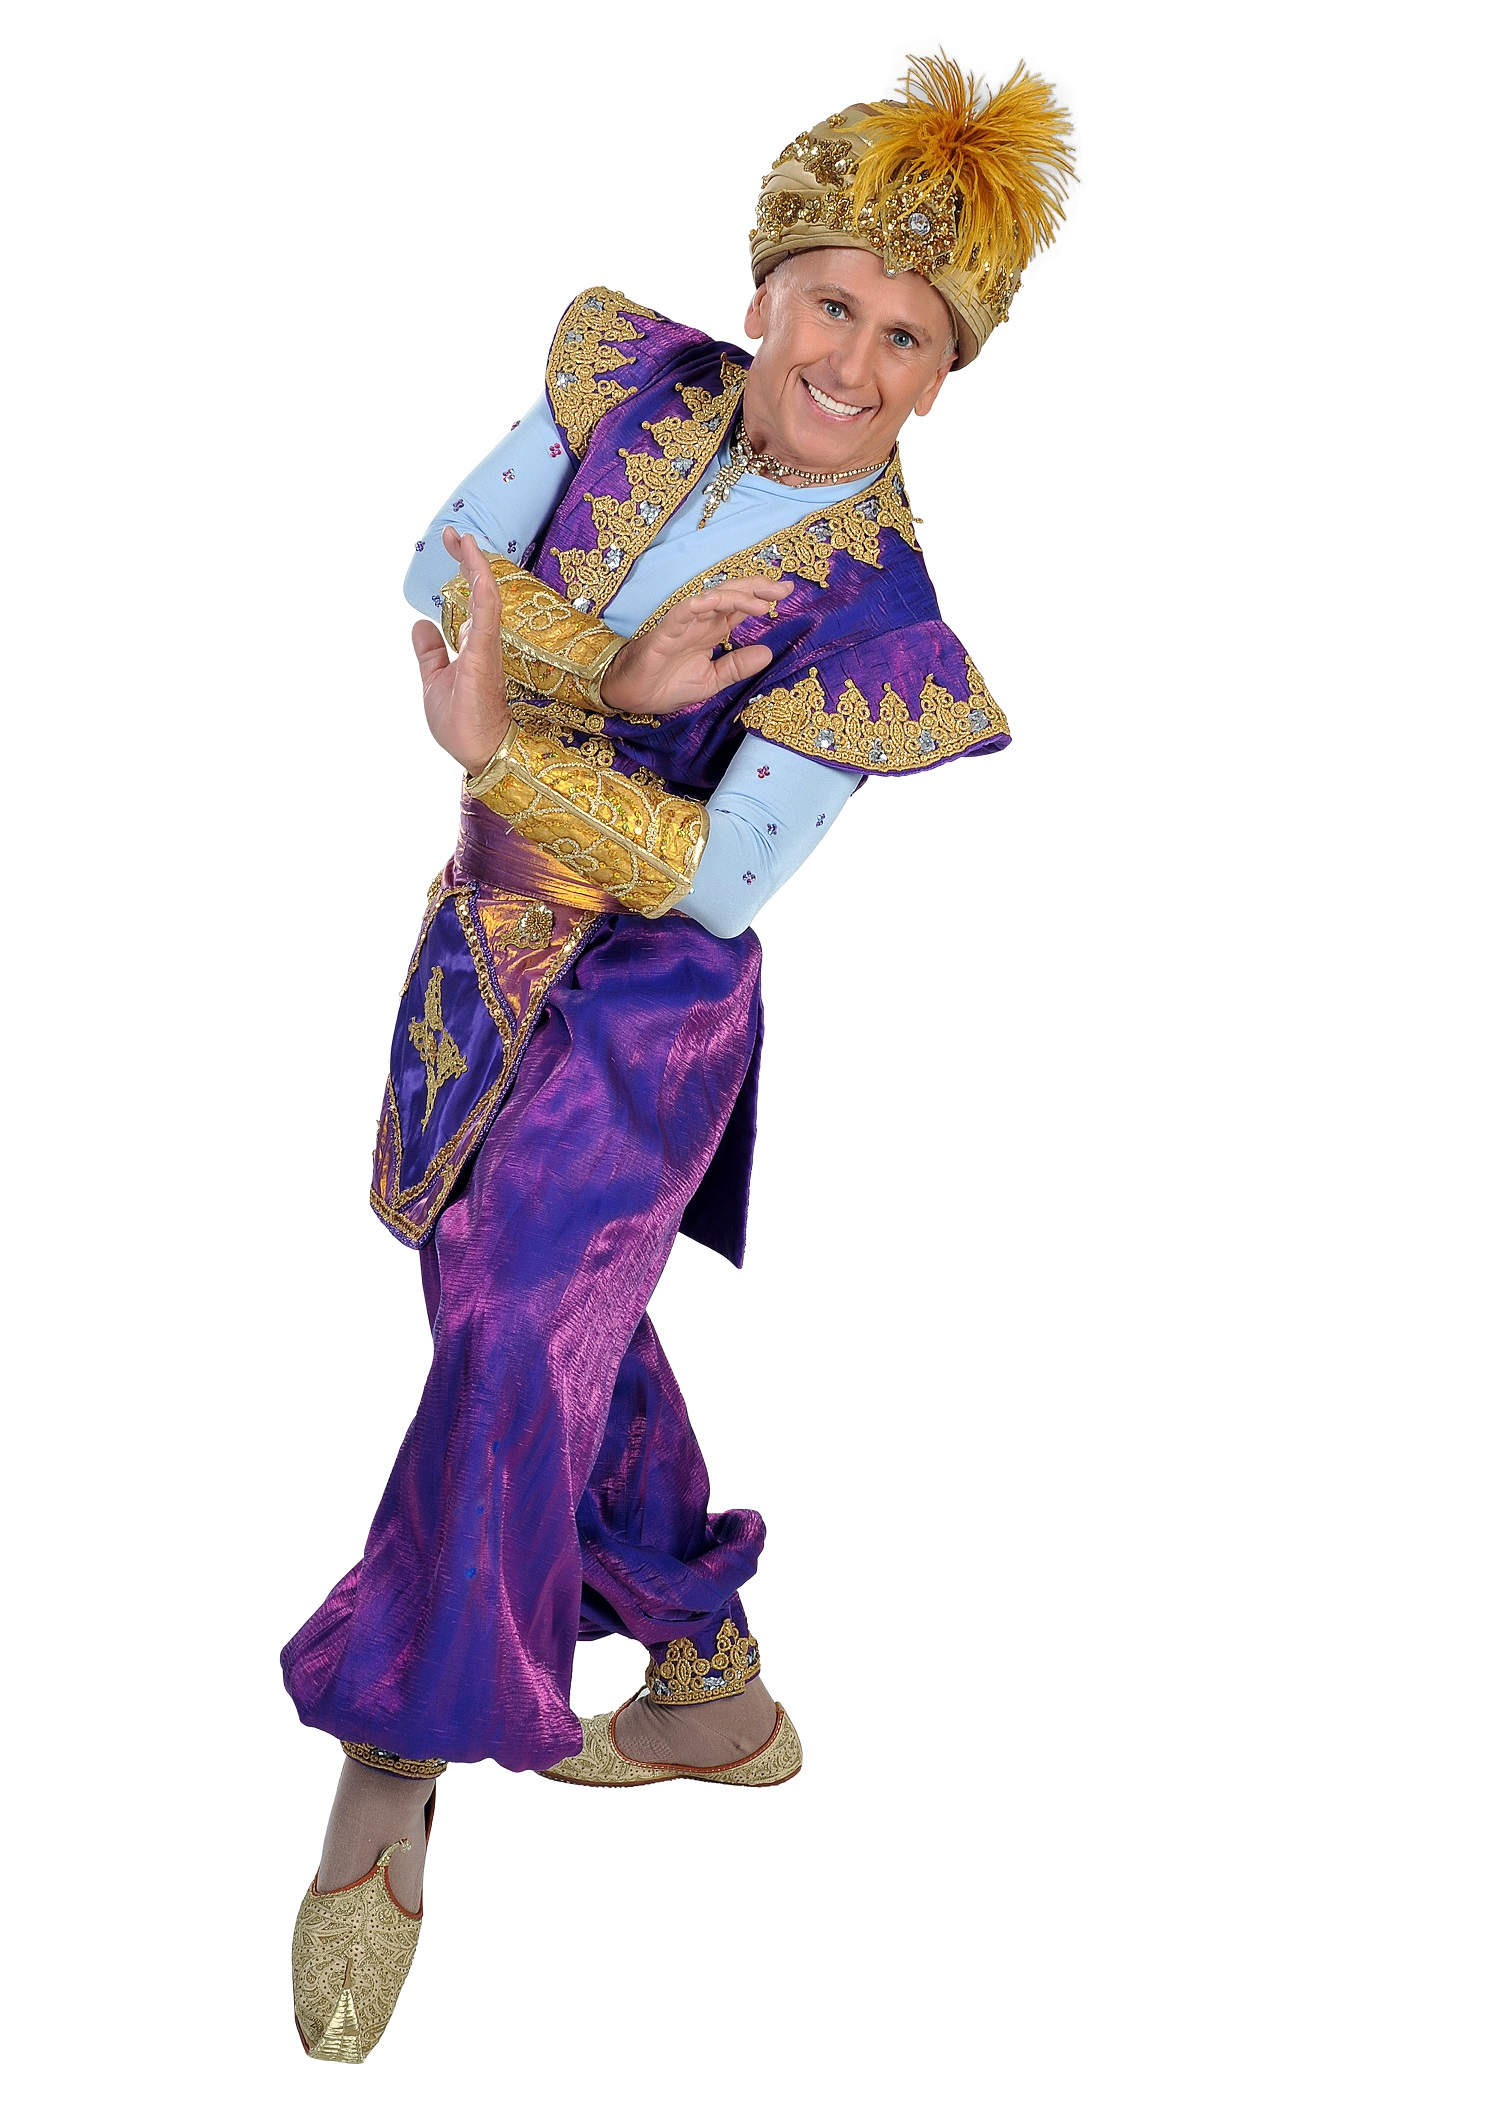 Panto 2015 - Wayne Sleep as Genie of the Ring